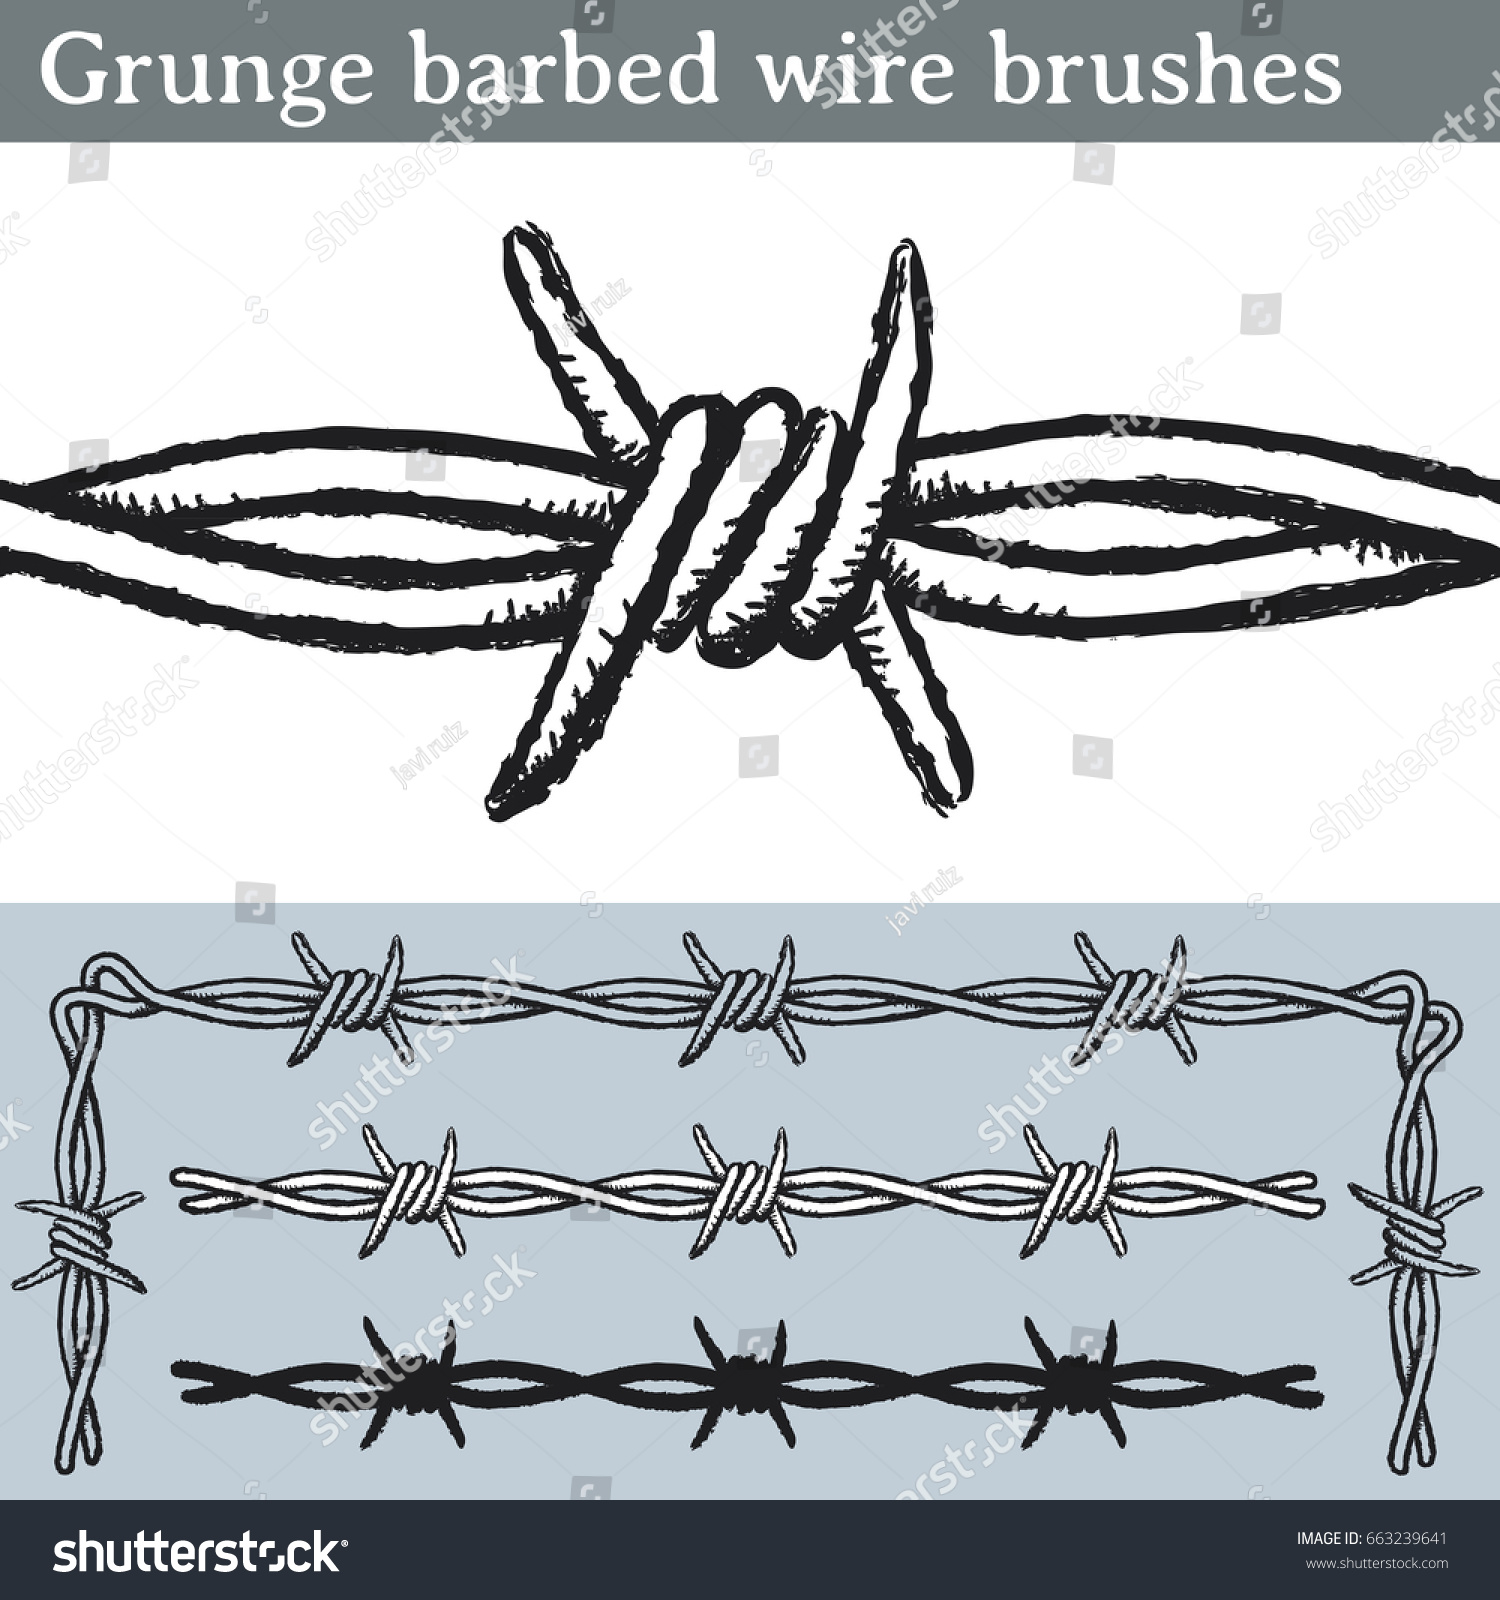 Grunge Barbed Wire Brushes Brushes Illustrator Stock Vector ...